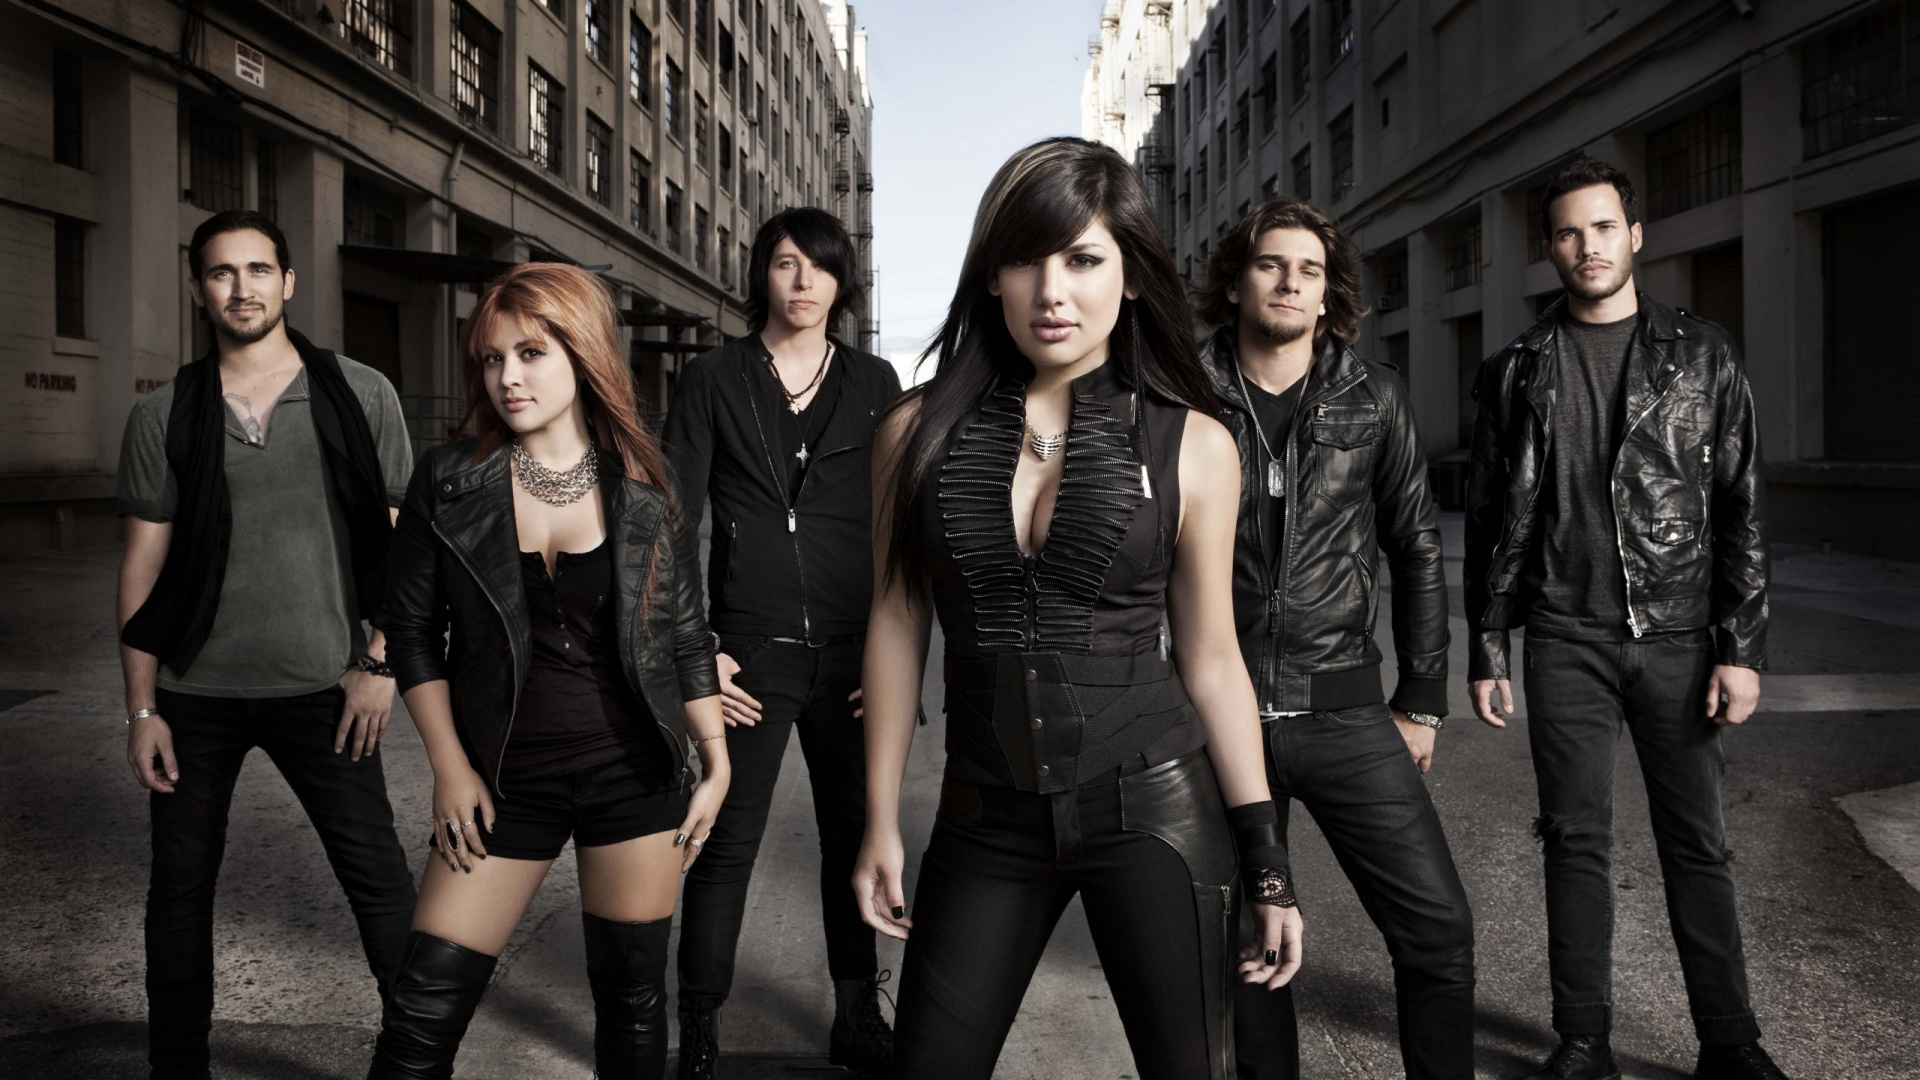 Valora Band Wallpapers HD Wallpapers 1920x1080